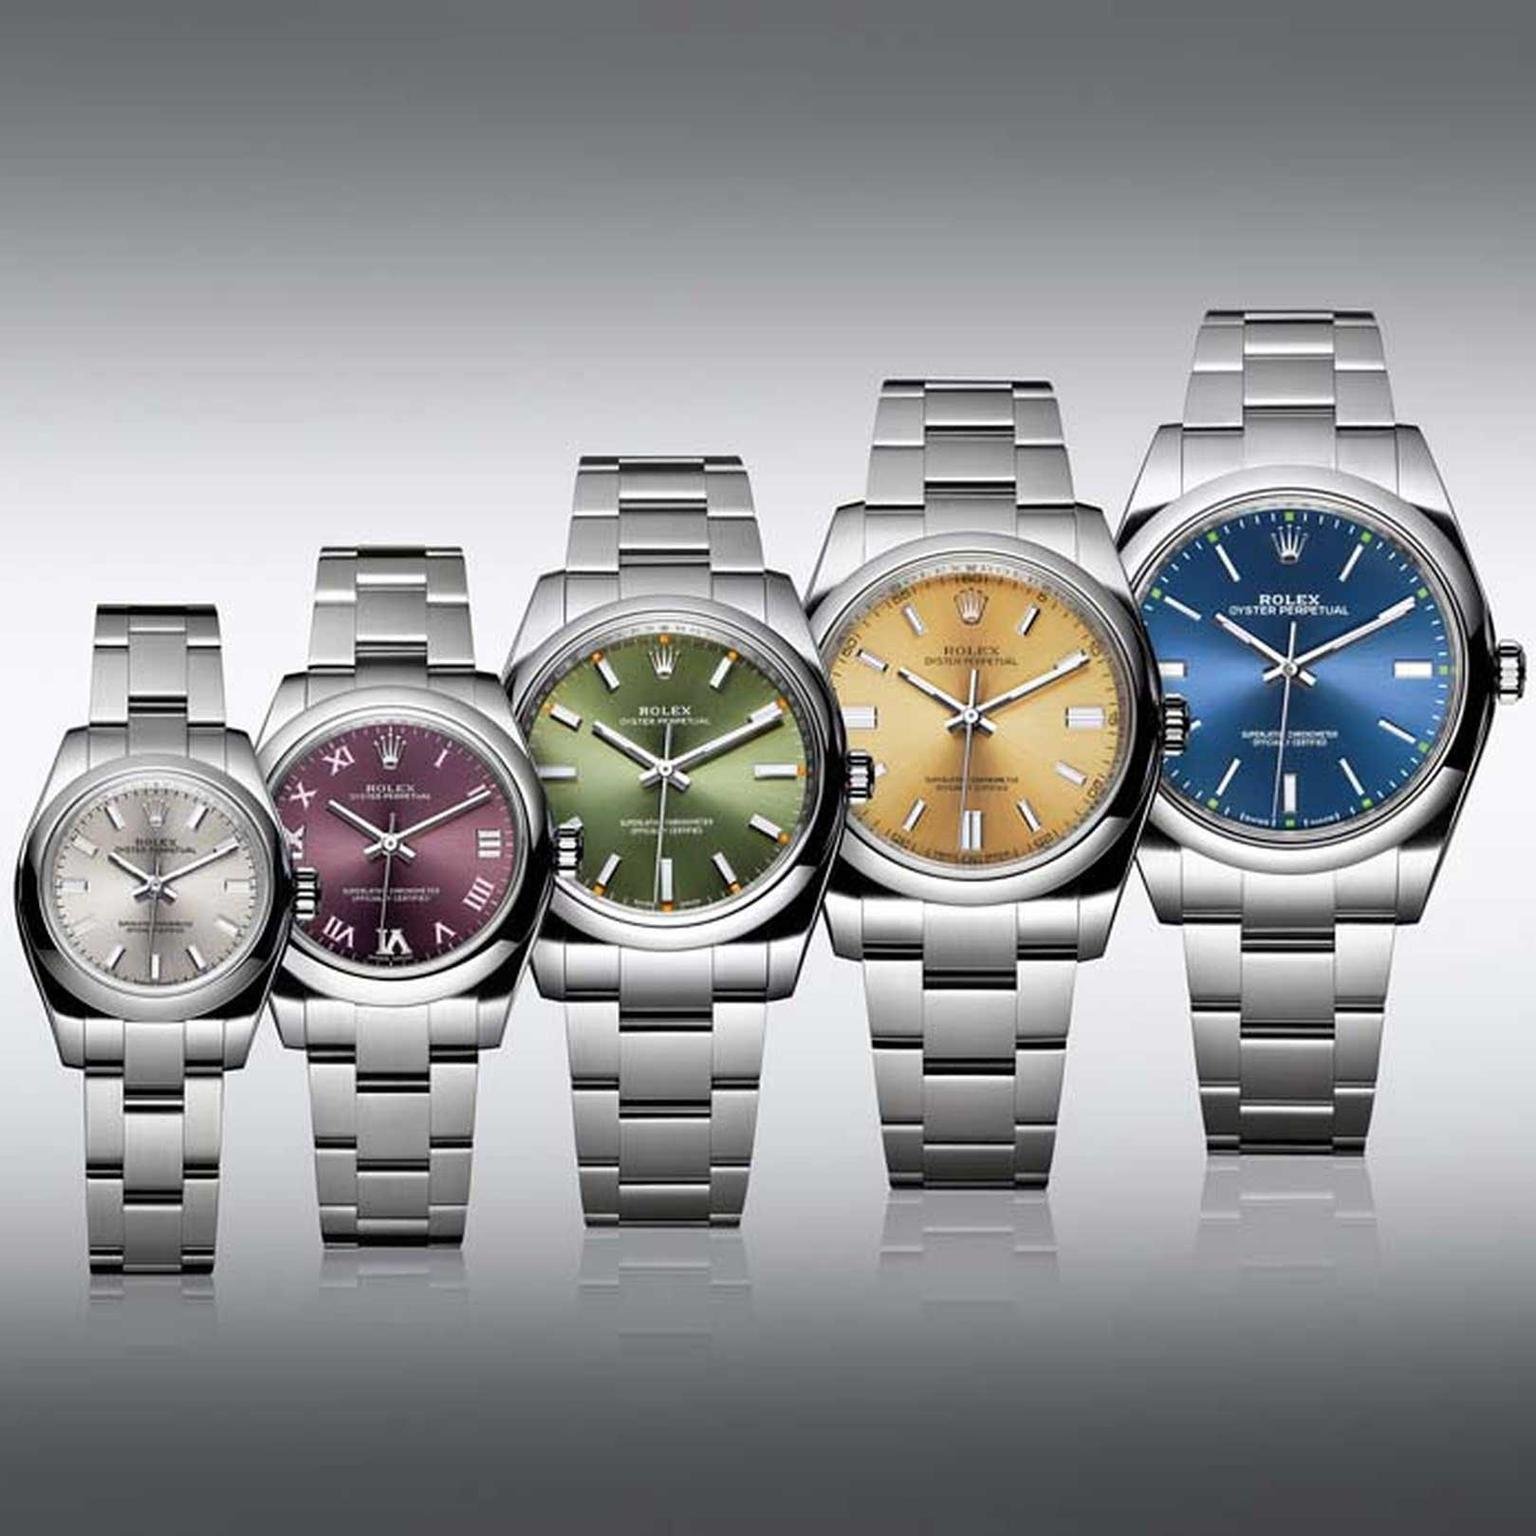 Rolex -Oyster -Perpetual -watches